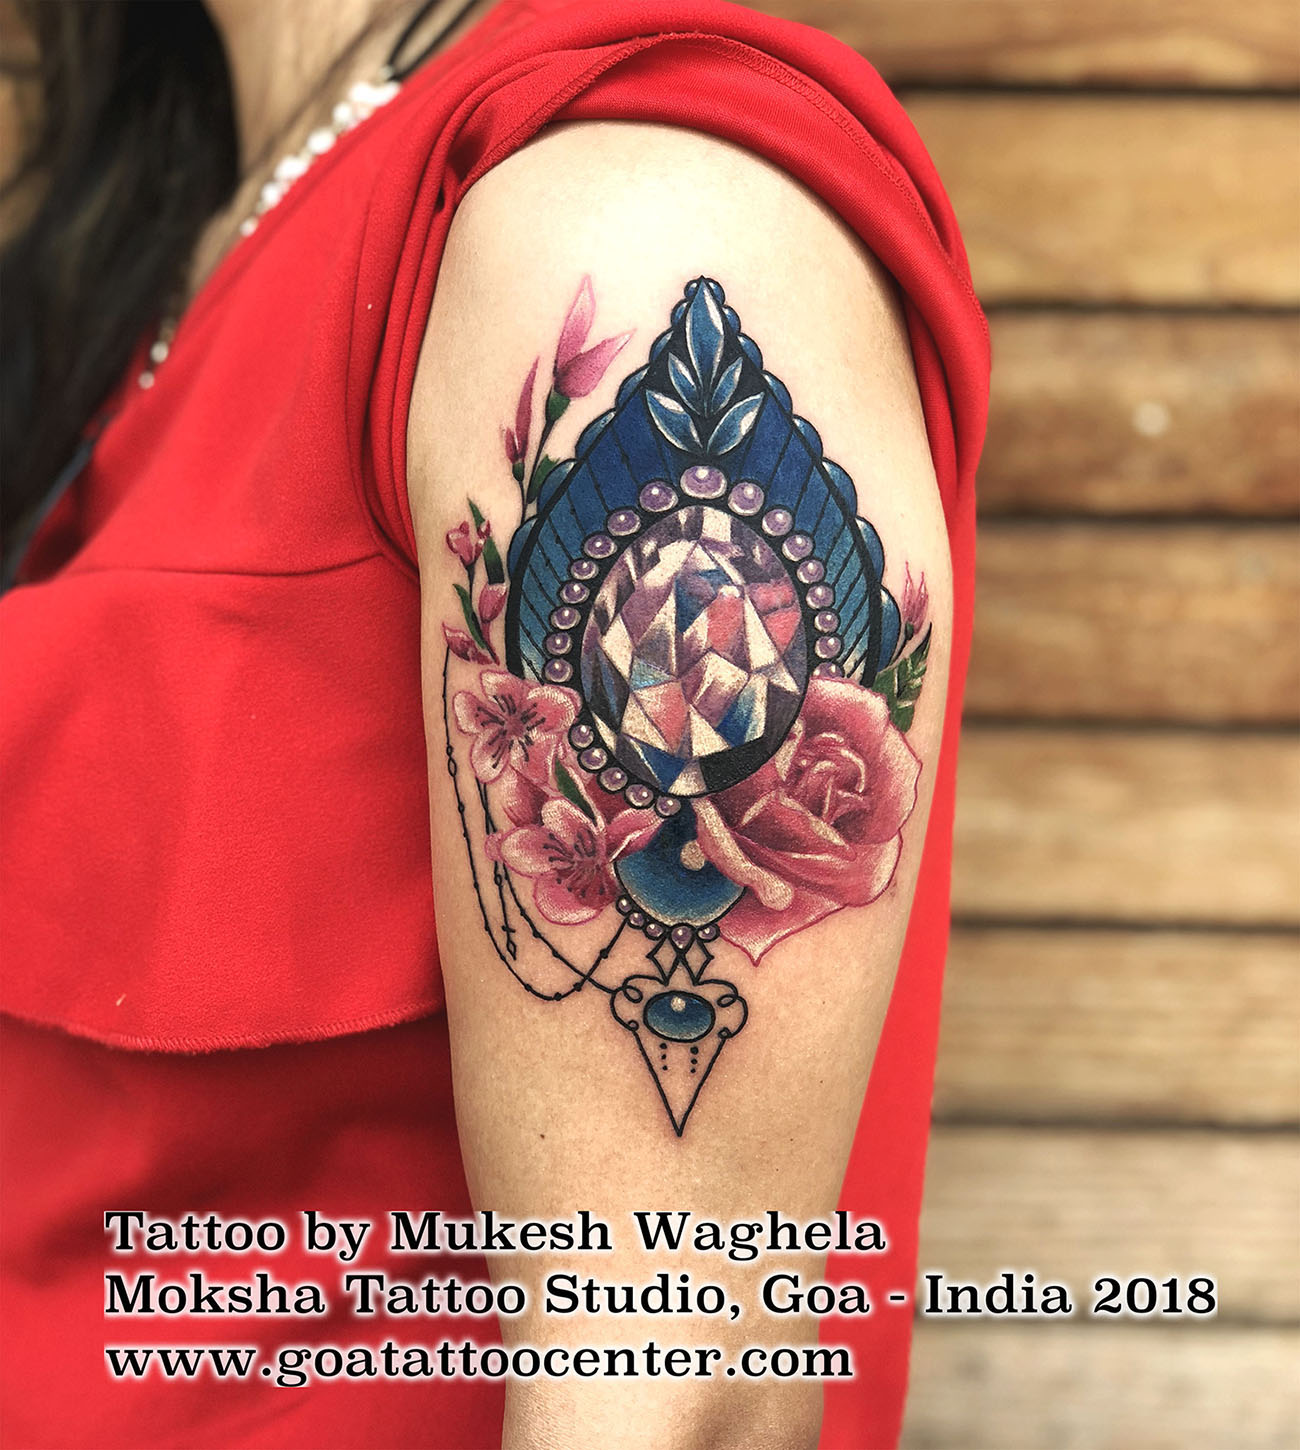 Ornamental-tattoo-mukesh-waghela-moksha-tattoo-studio